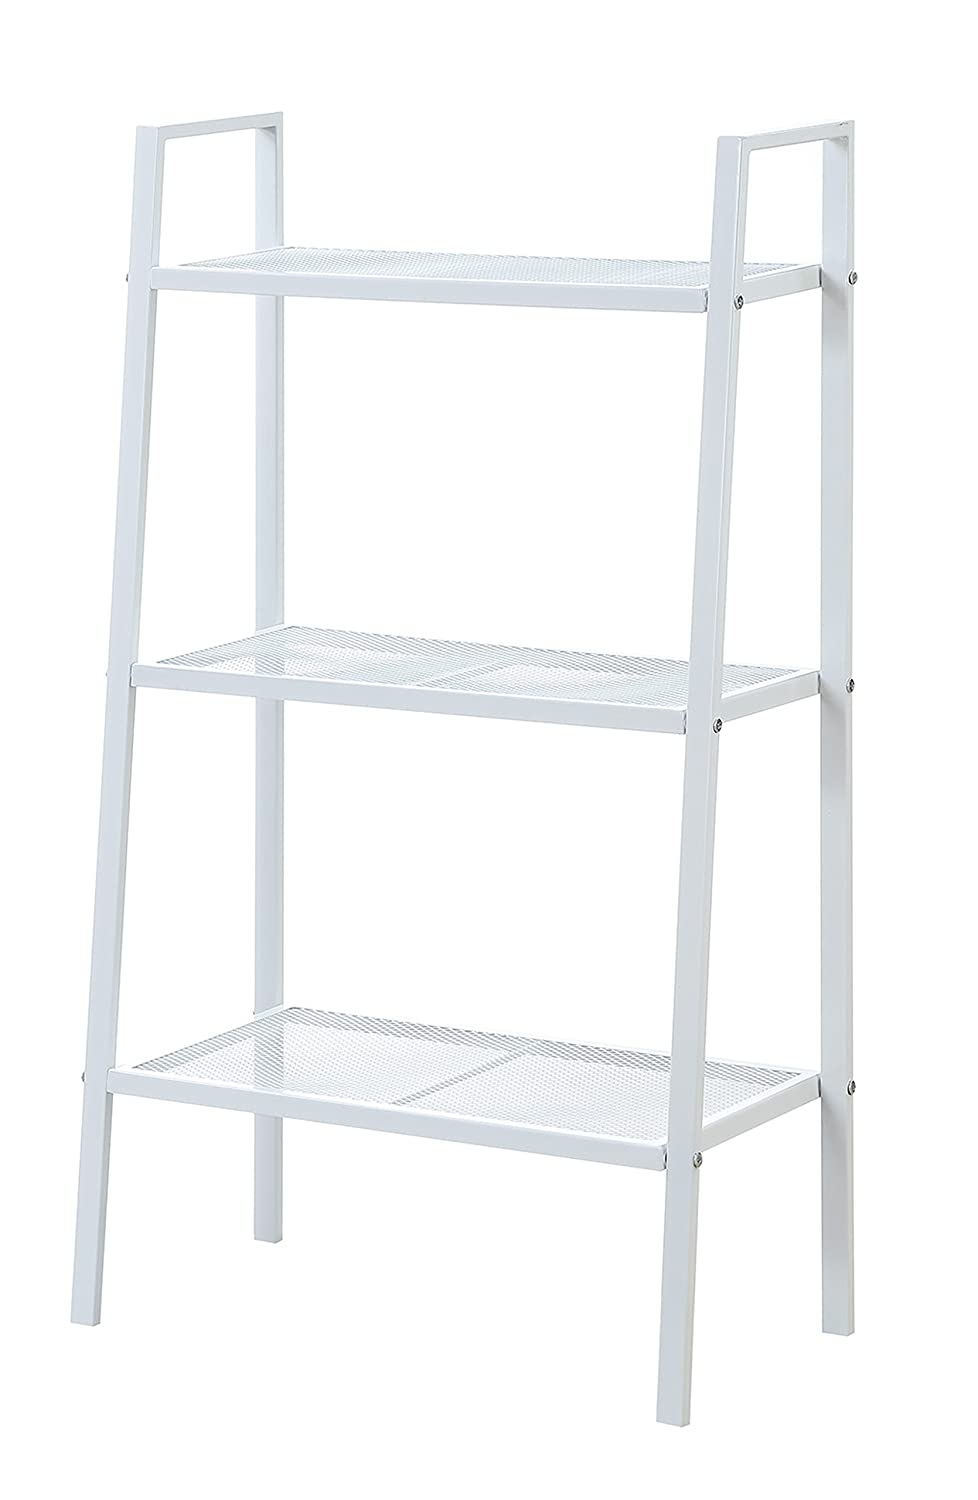 Convenience Concepts Xtra Storage Metal Shelving, 3-Tier, White